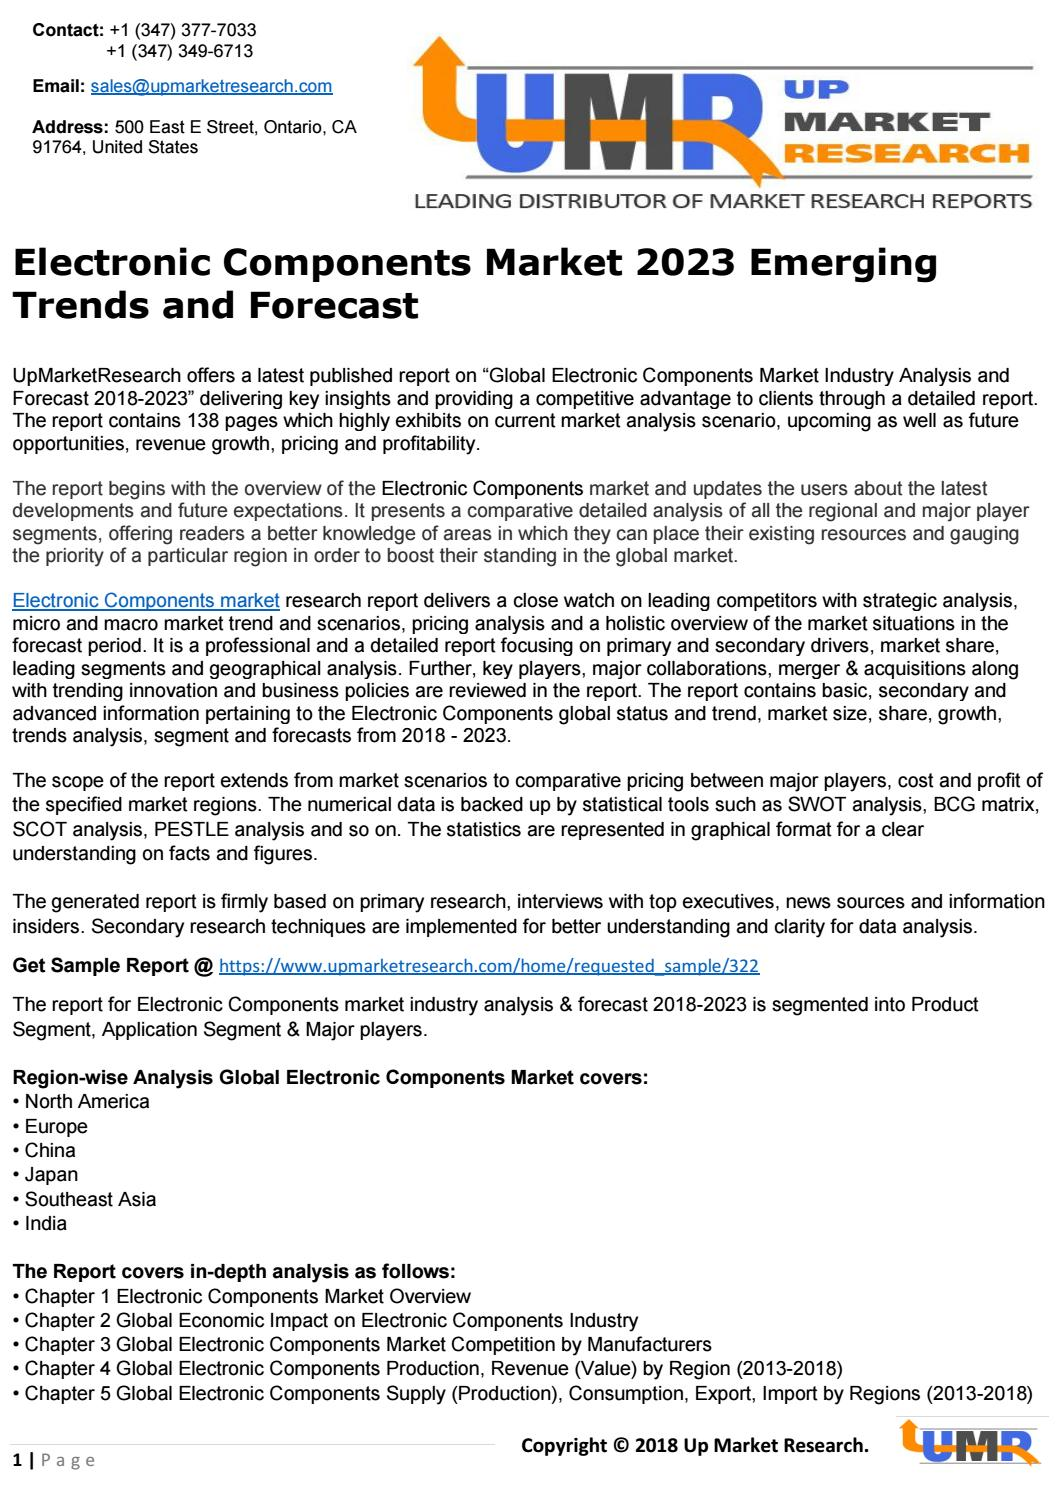 Electronic Components Market 2023 Emerging Trends and Forecast by ...